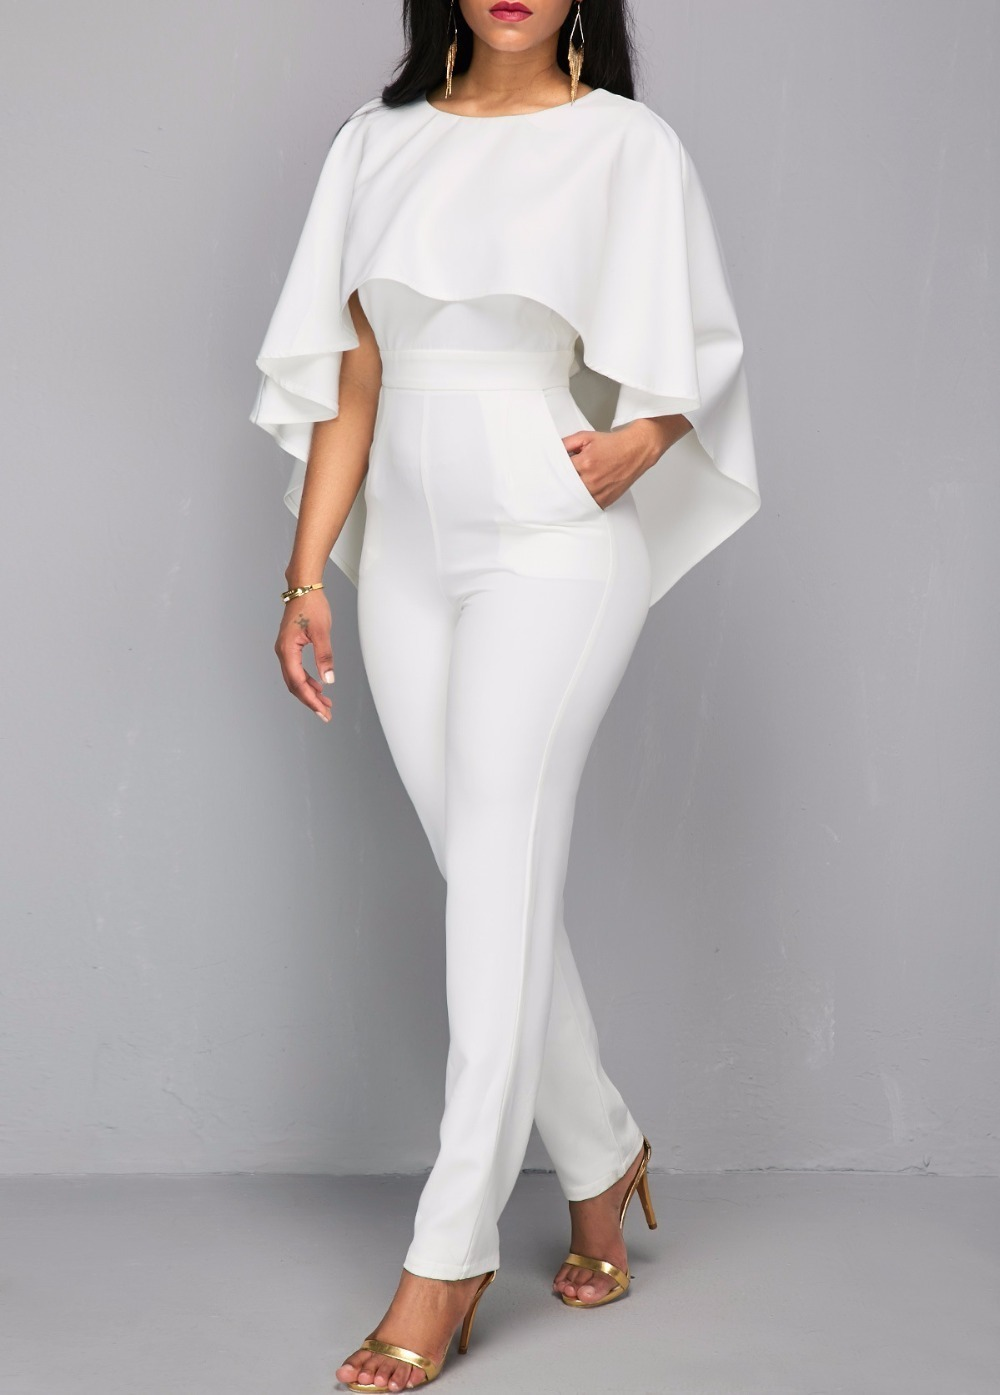 Impollinare Taglia scorta  2020 Rompers Womens Jumpsuit Body Bodies Woman White Jumpsuit For Women White  Romper Europe And The United States Jumpsuits Rompers T5190614 From  Linjun05, $29.44 | DHgate.Com